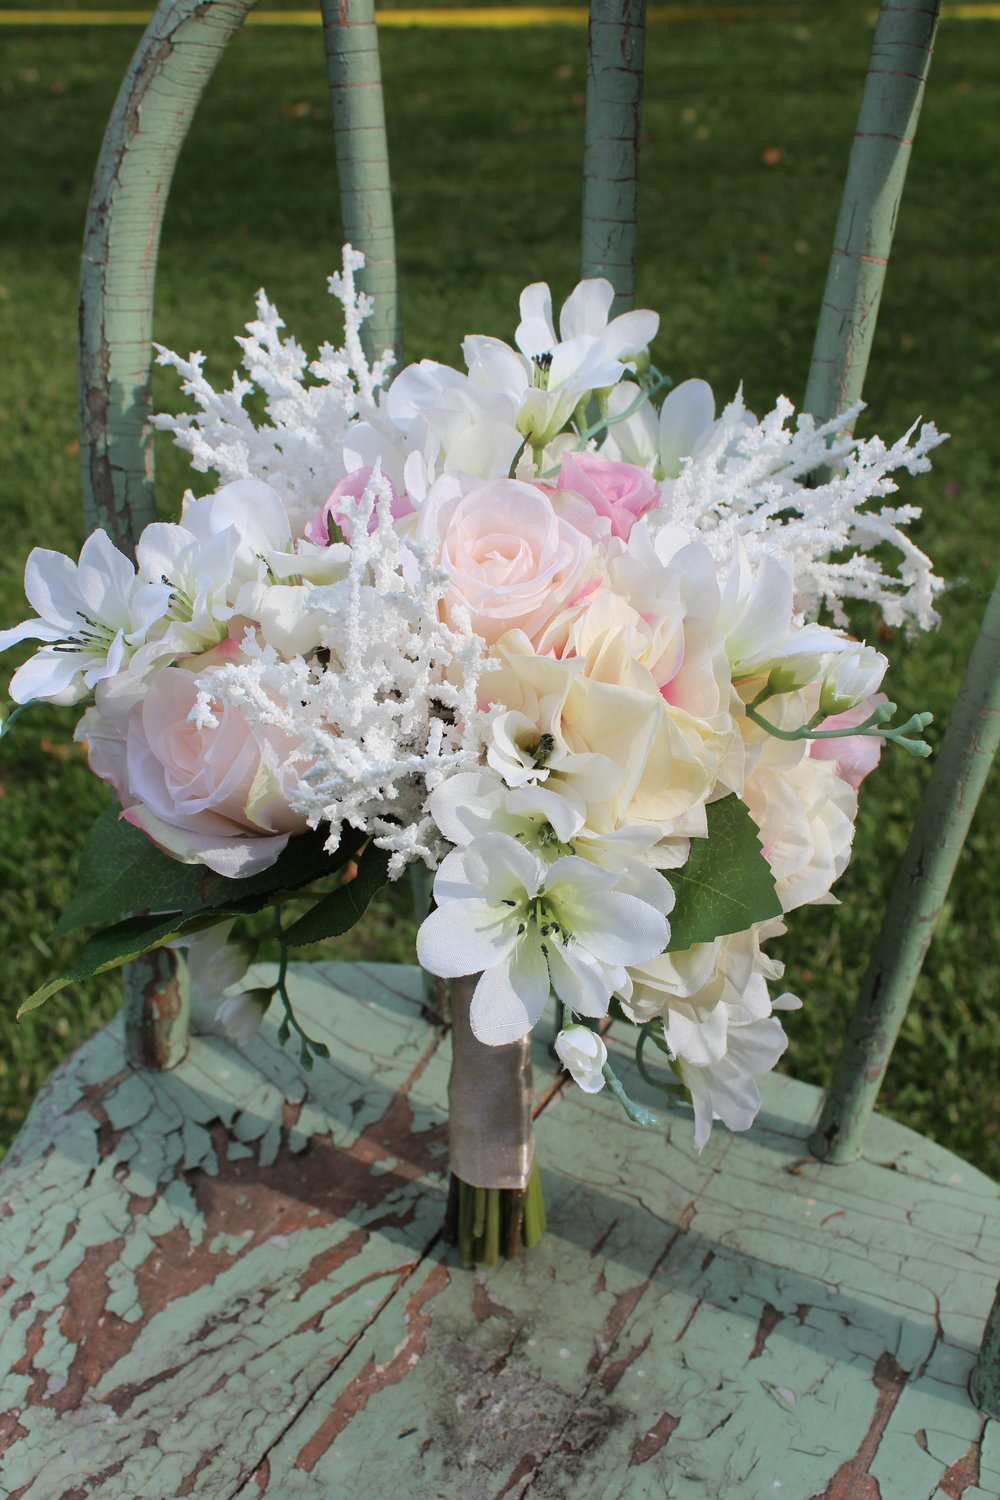 Blush Pink Roses and Hydrangea, White Astilbe and White Freesia